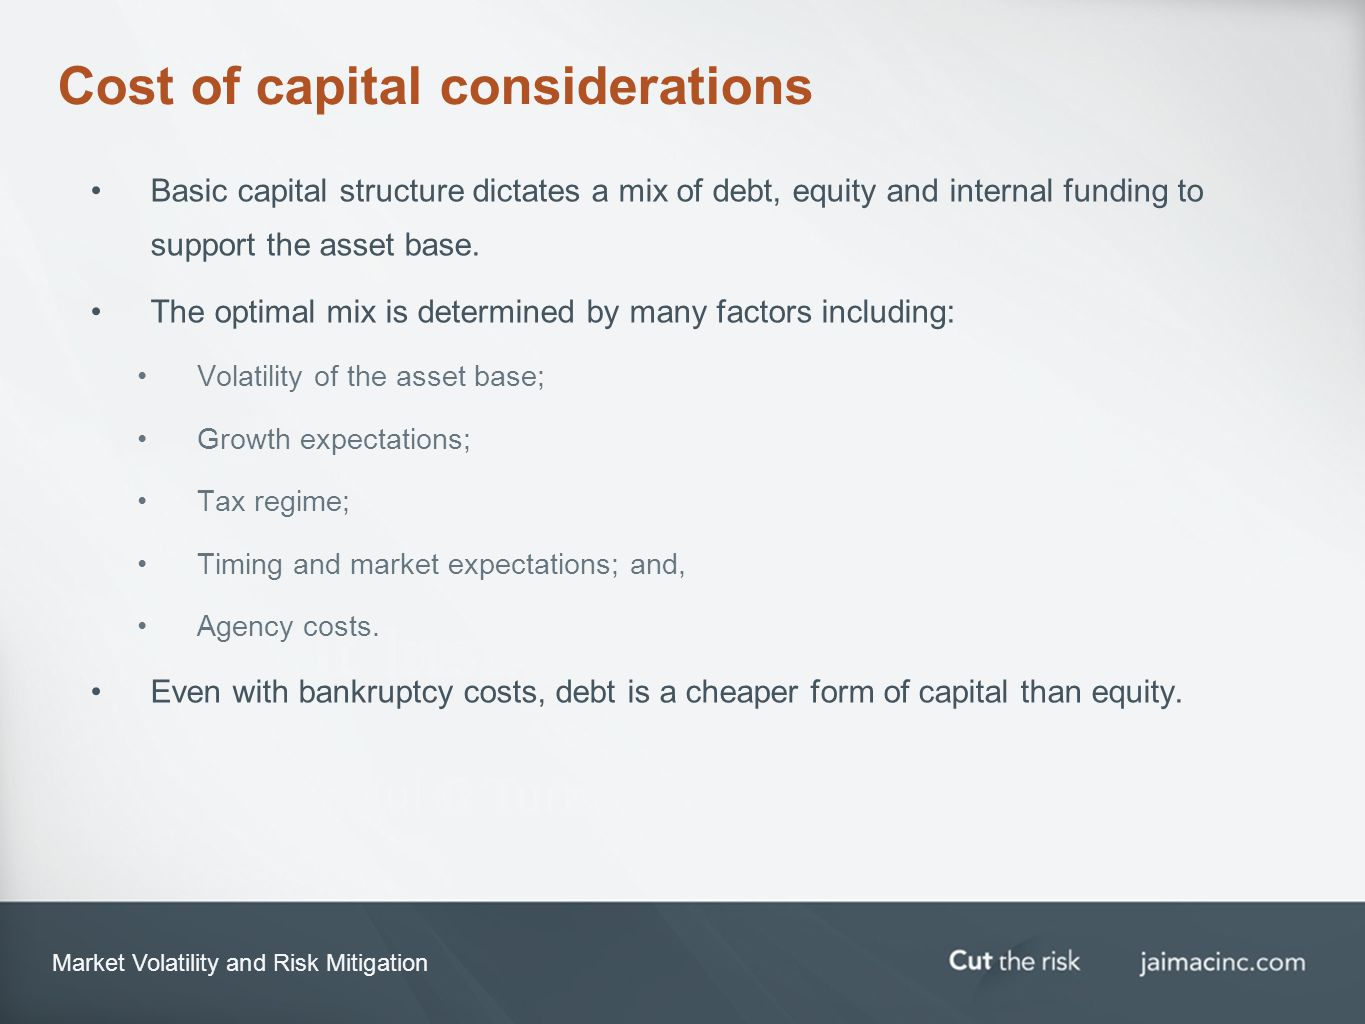 Market Volatility and Risk Mitigation Cost of capital considerations Basic capital structure dictates a mix of debt, equity and internal funding to su